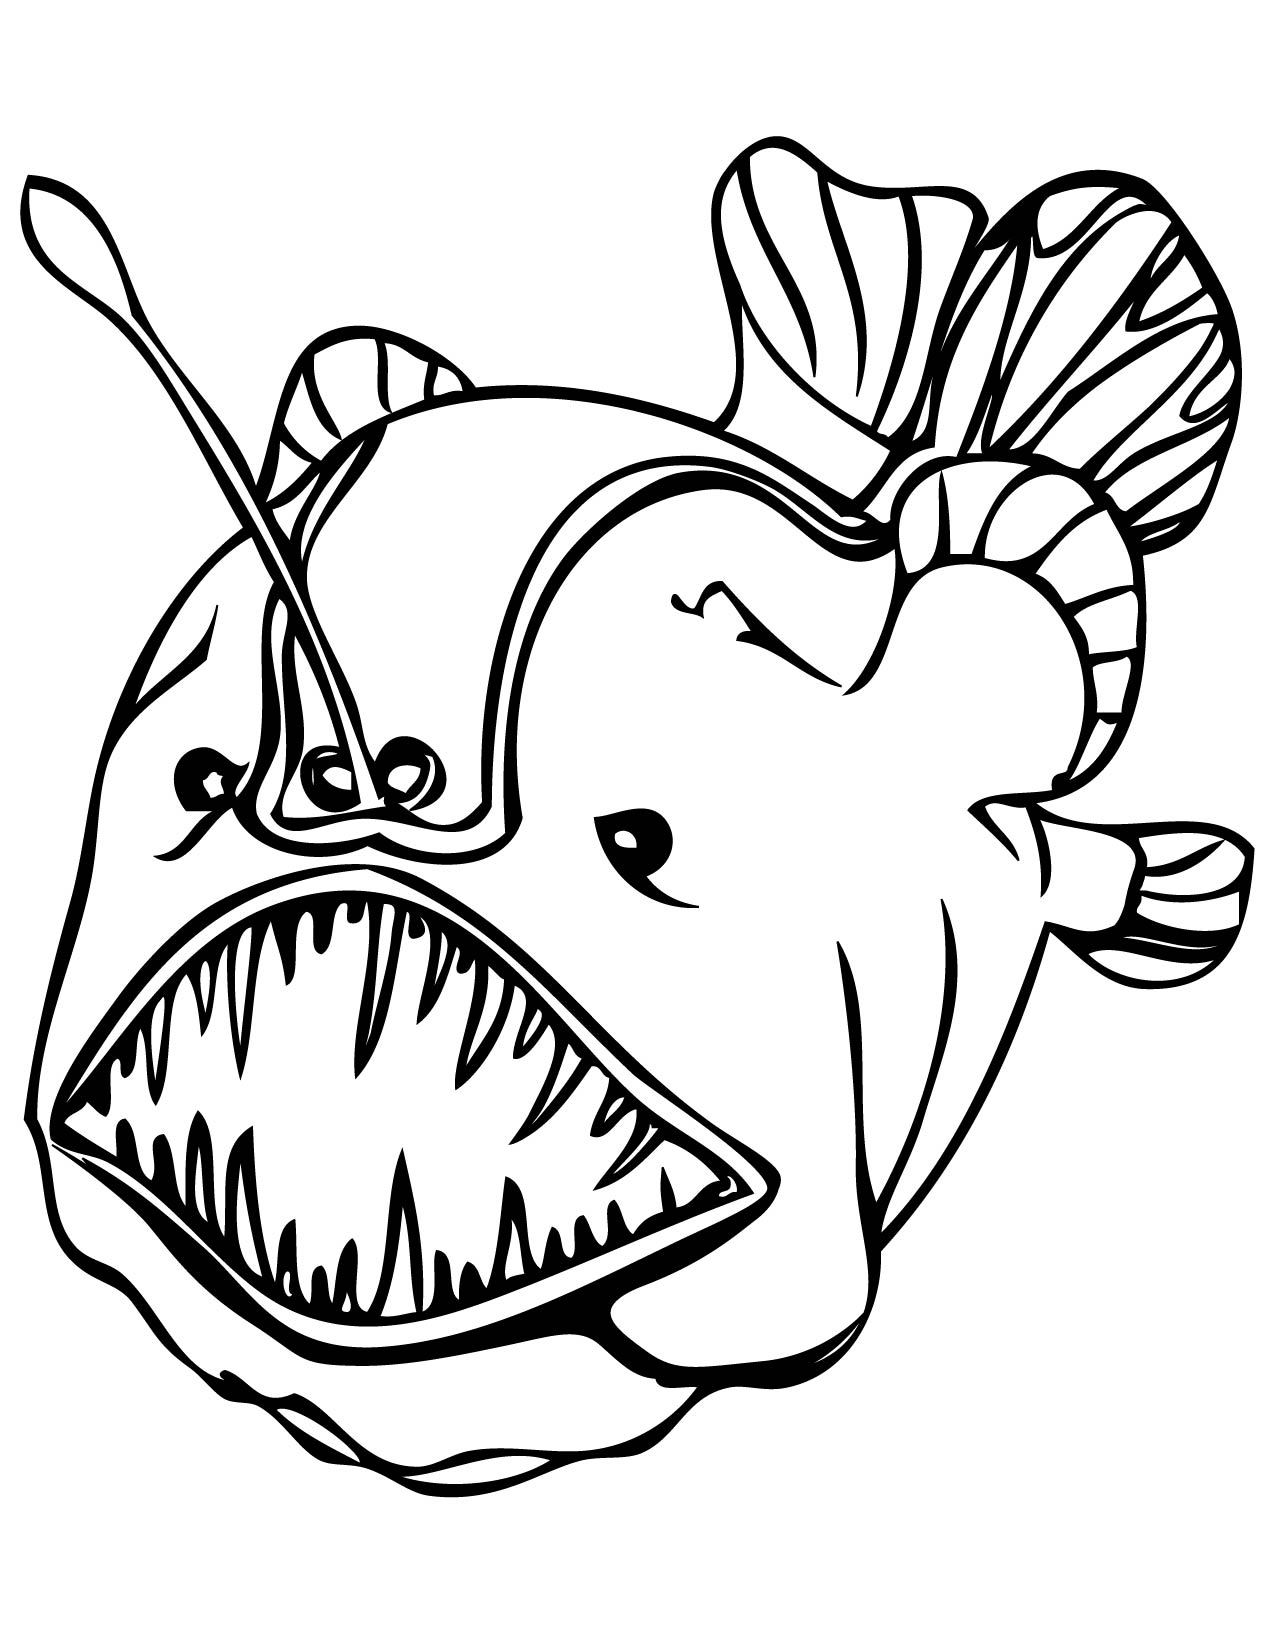 Sea fish coloring pages download and print for free for Color pages of fish